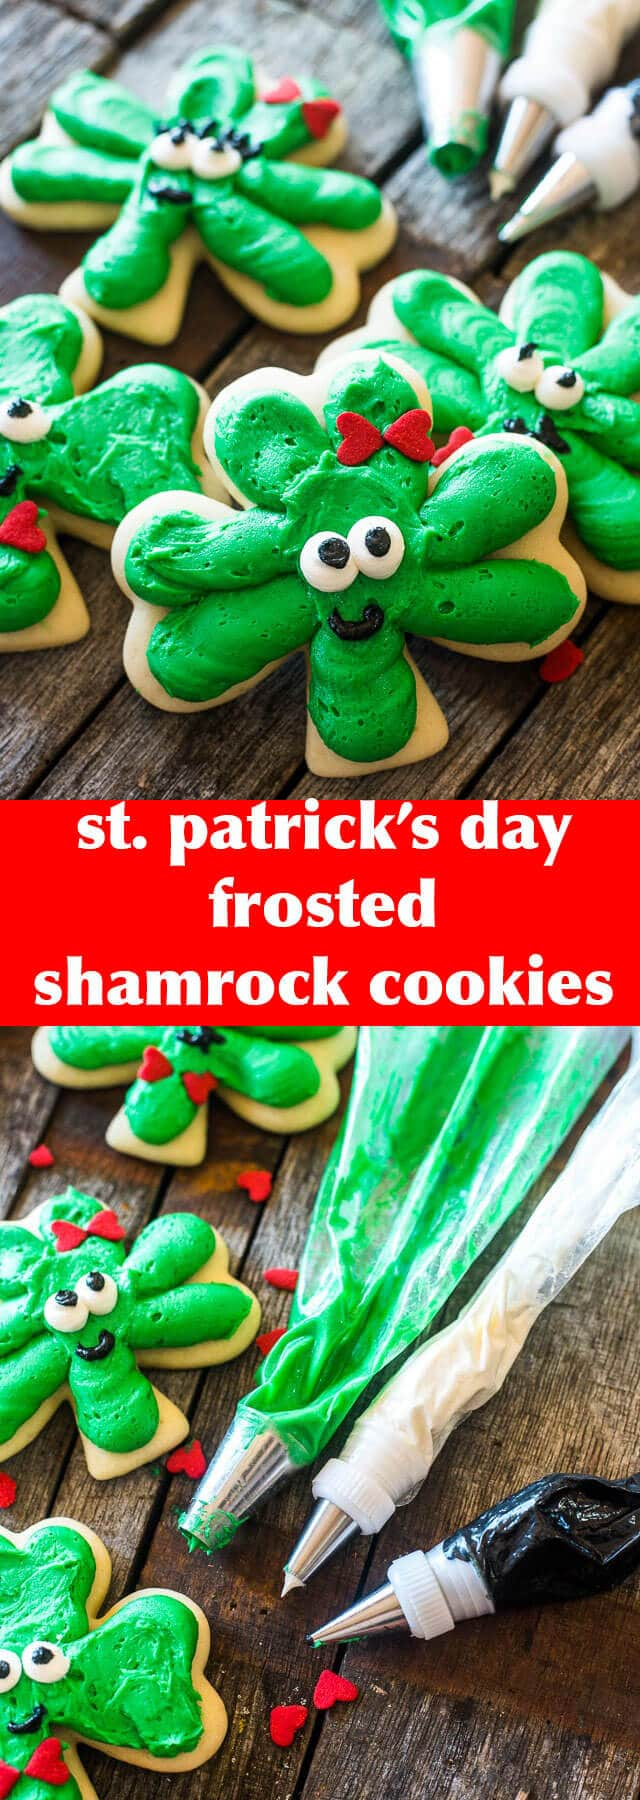 St. Patrick's Day Frosted Shamrock Cookies {3 Leaf Clover Cookie Tutorial} Mr & mrs Shamrock Cookies / Clover cookies / frosting / recipe